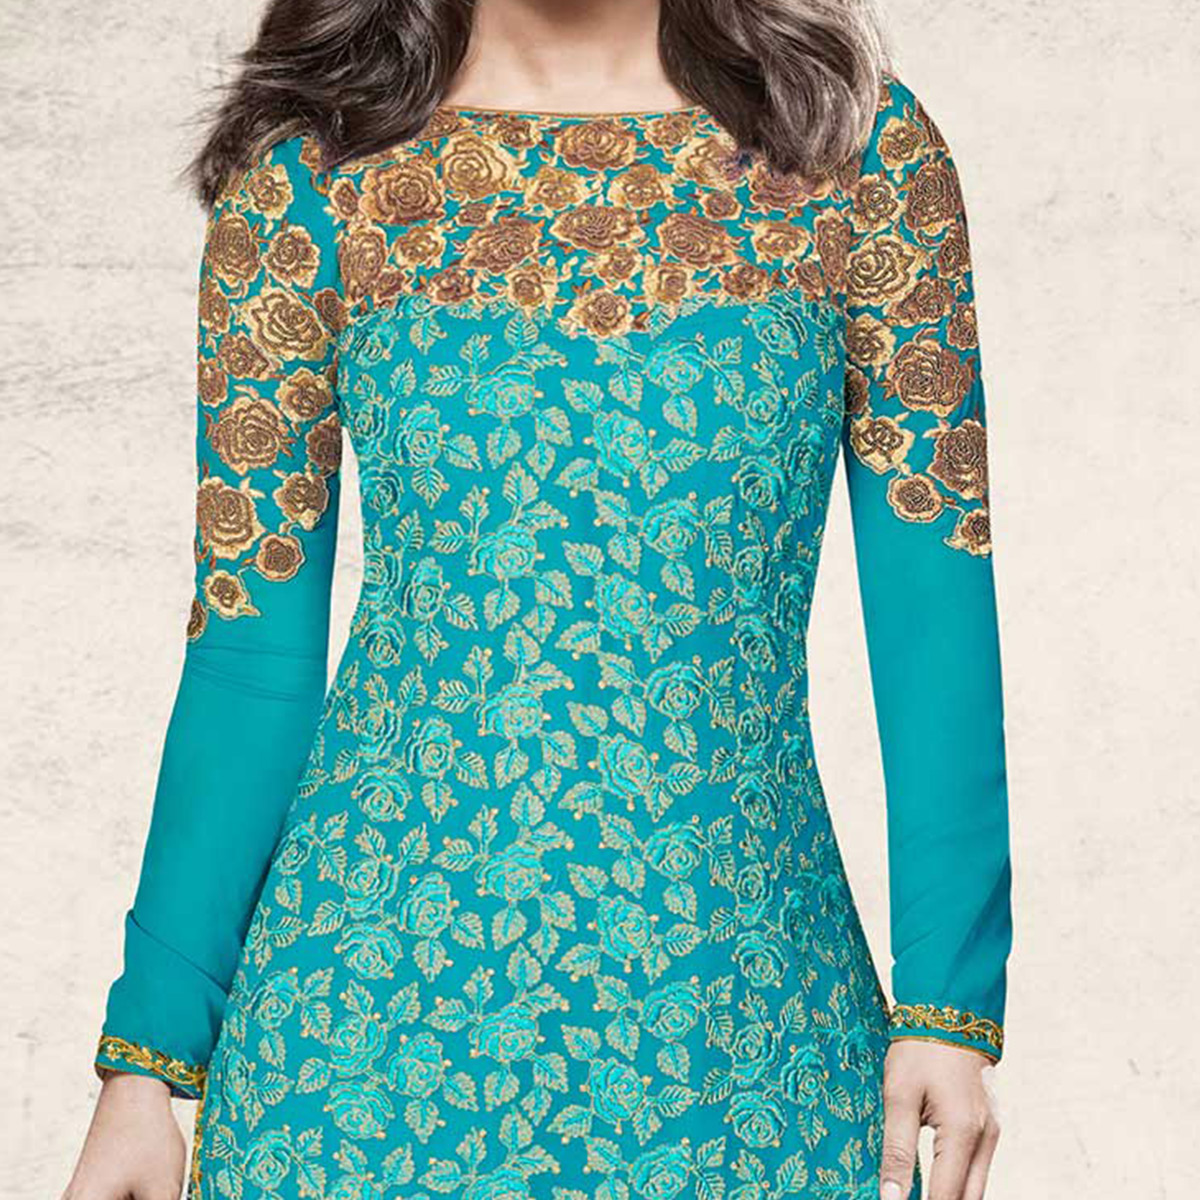 Innovative Teal Blue Colored Designer Embroidered Dyed Georgette Suit